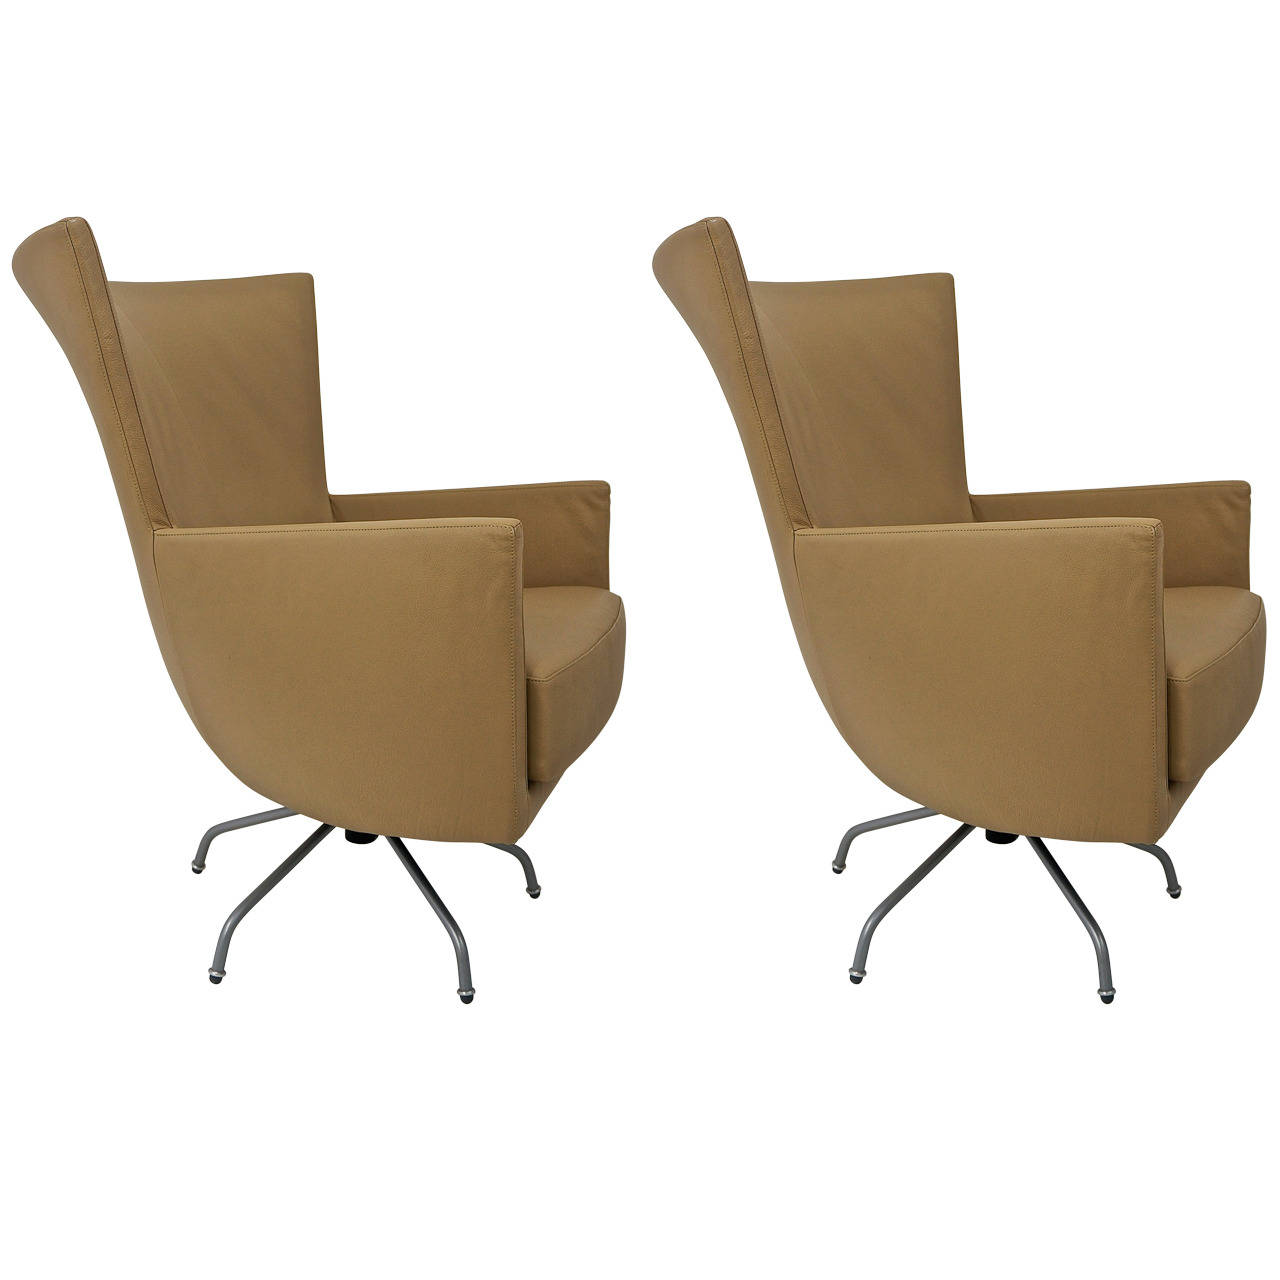 Pair Of Italian Leather Swivel Lounge Chairs On Antique